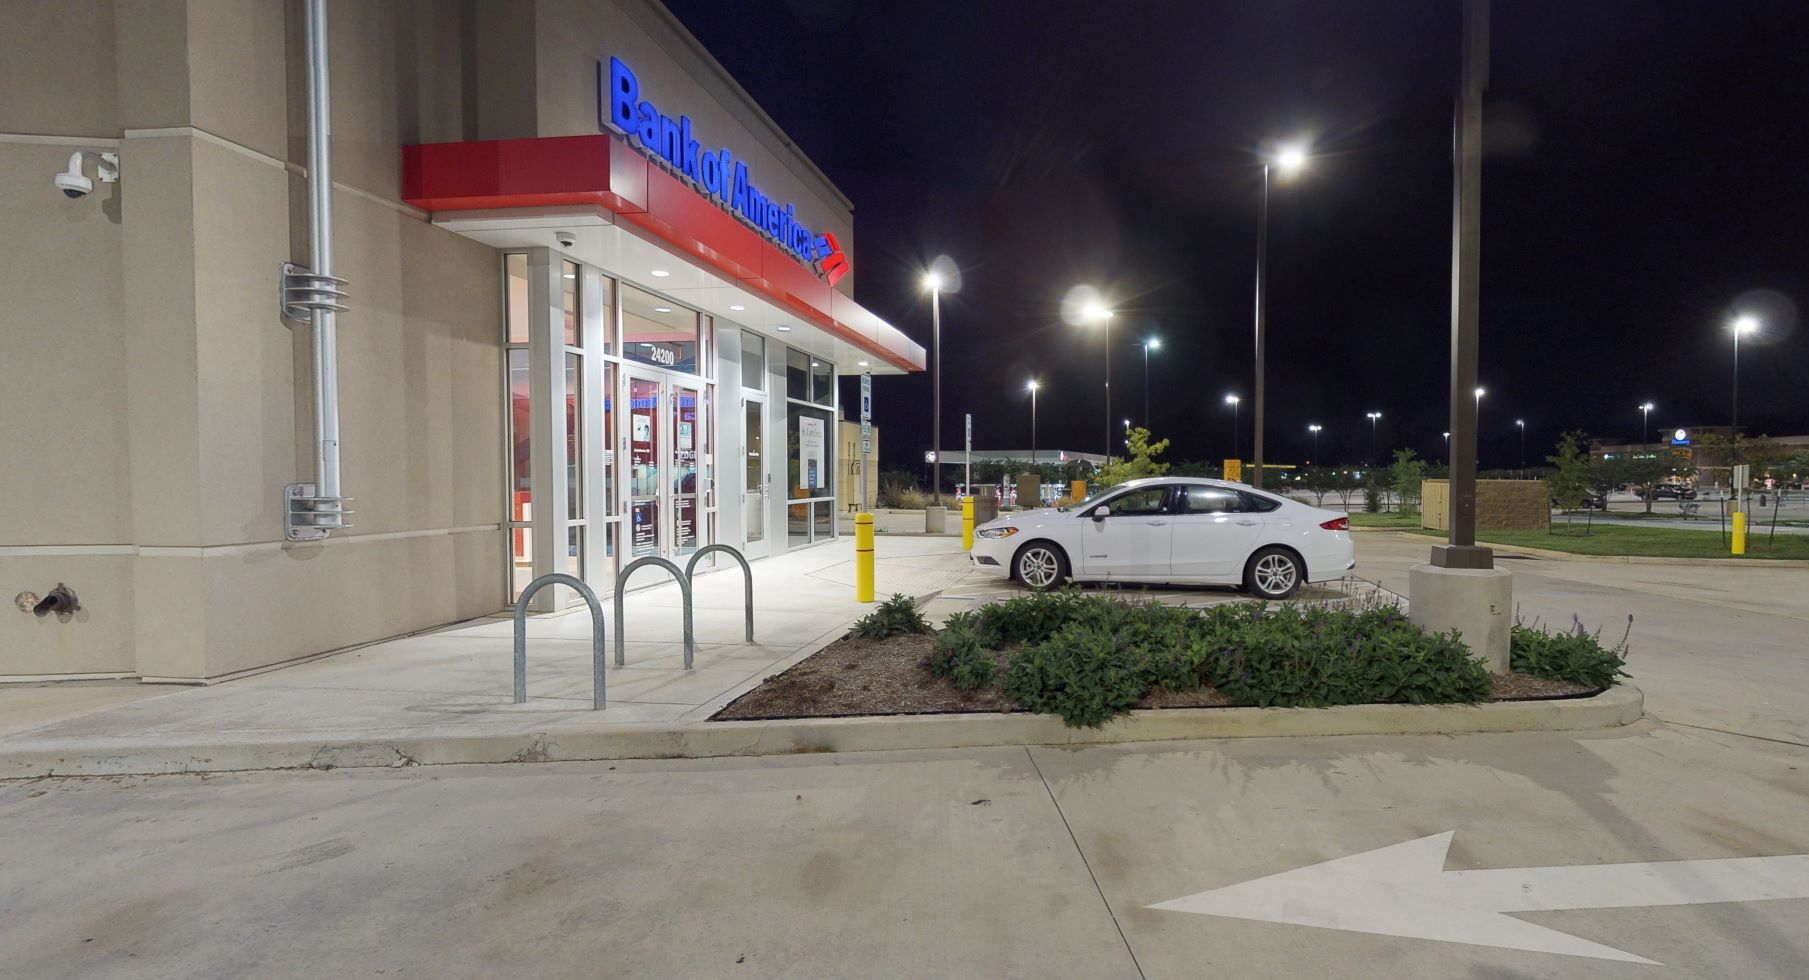 Bank of America financial center with drive-thru ATM | 24200 Kuykendahl Rd, Tomball, TX 77375